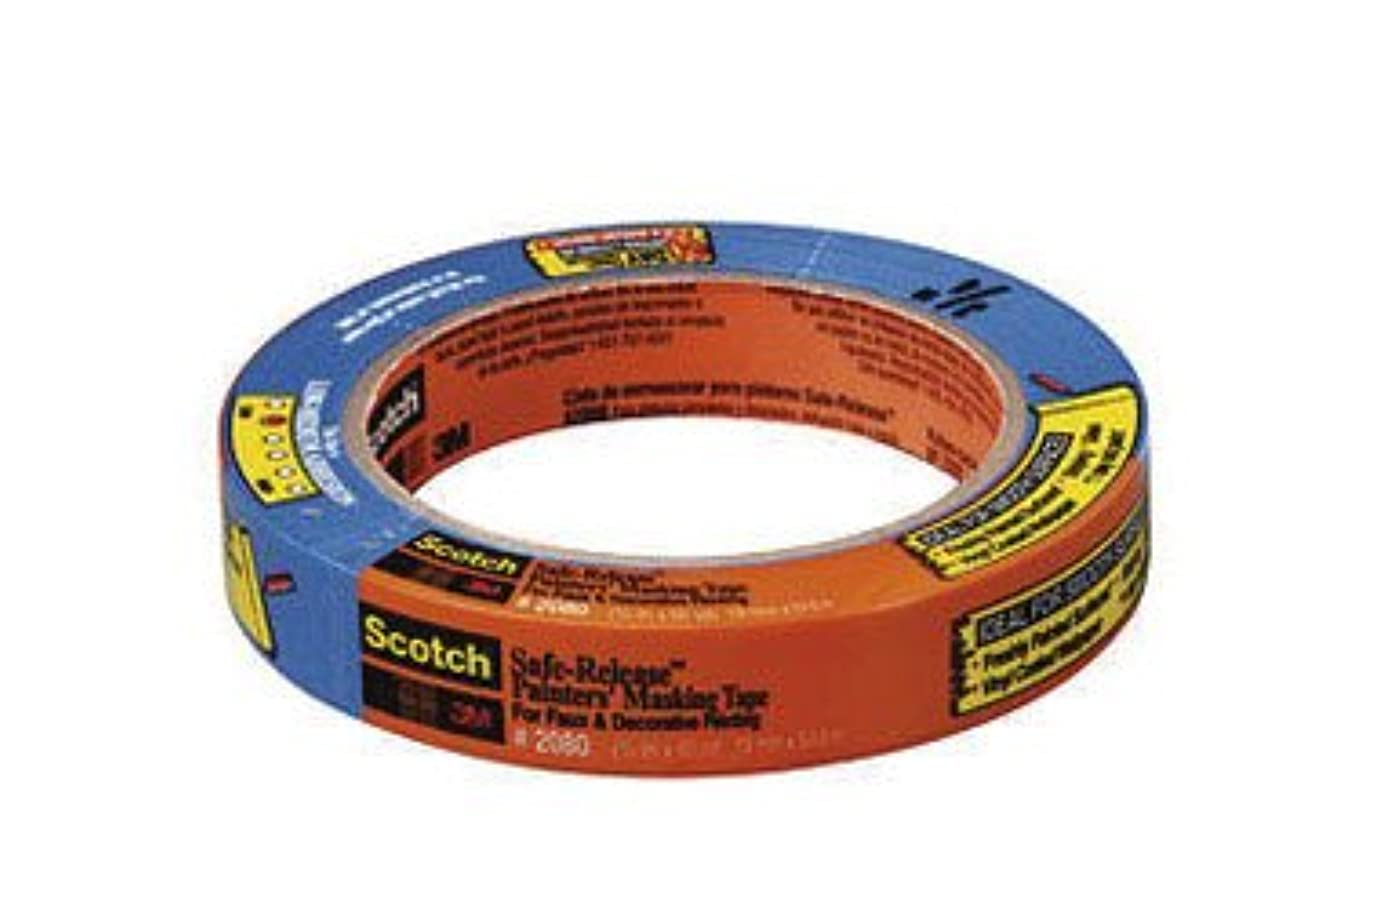 3M Scotch-Blue 2080 Safe-Release Delicate Surfaces Painters Masking Tape, 19 lbs/in Tensile Strength, 60 yds Length x 1-1/2